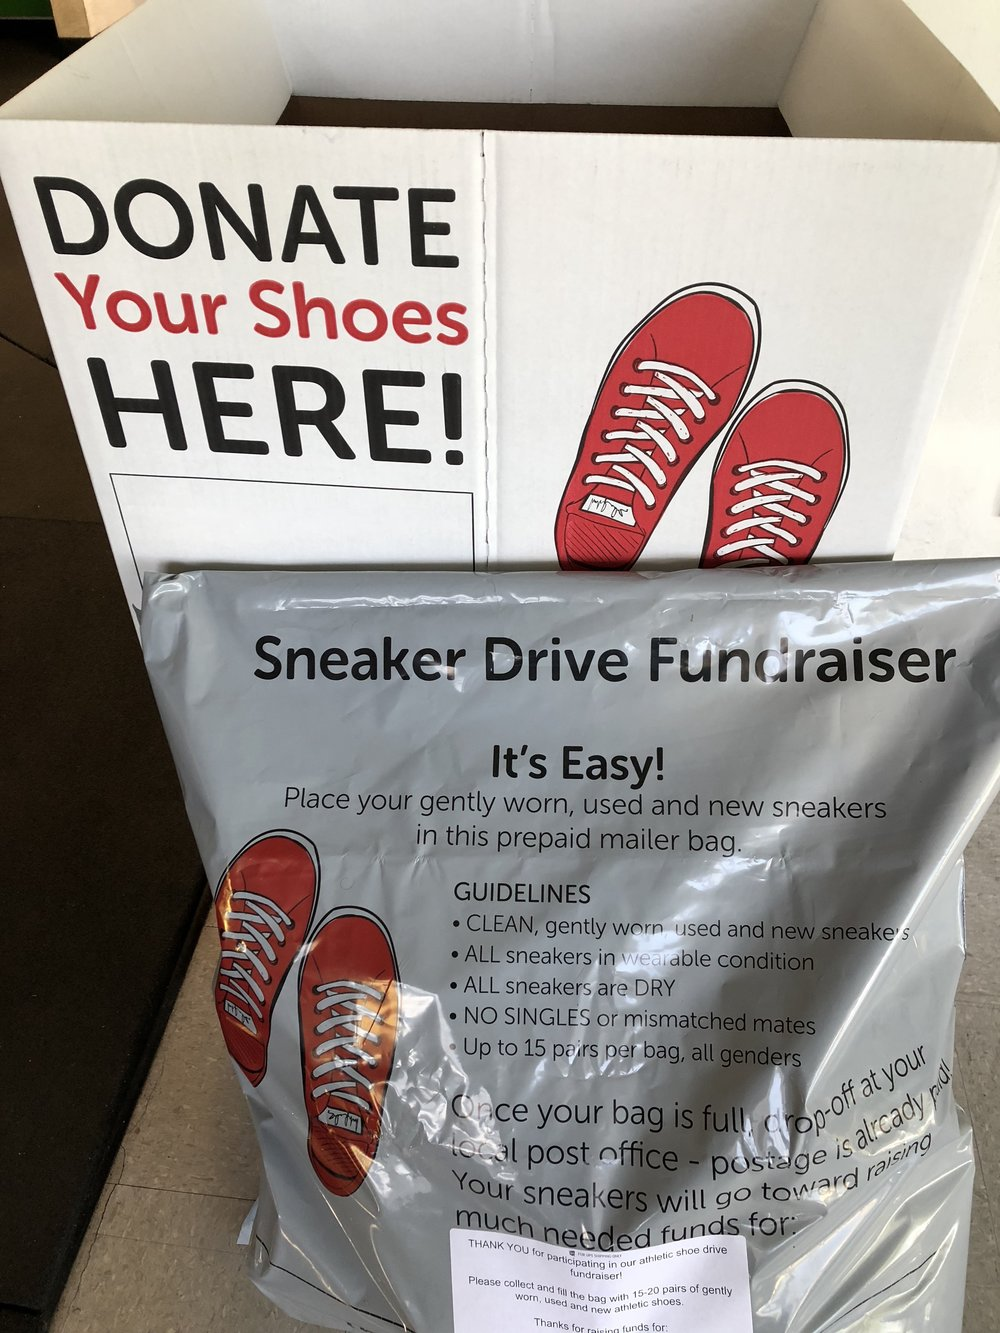 Our first batch of shoes donated is being sent out this week!